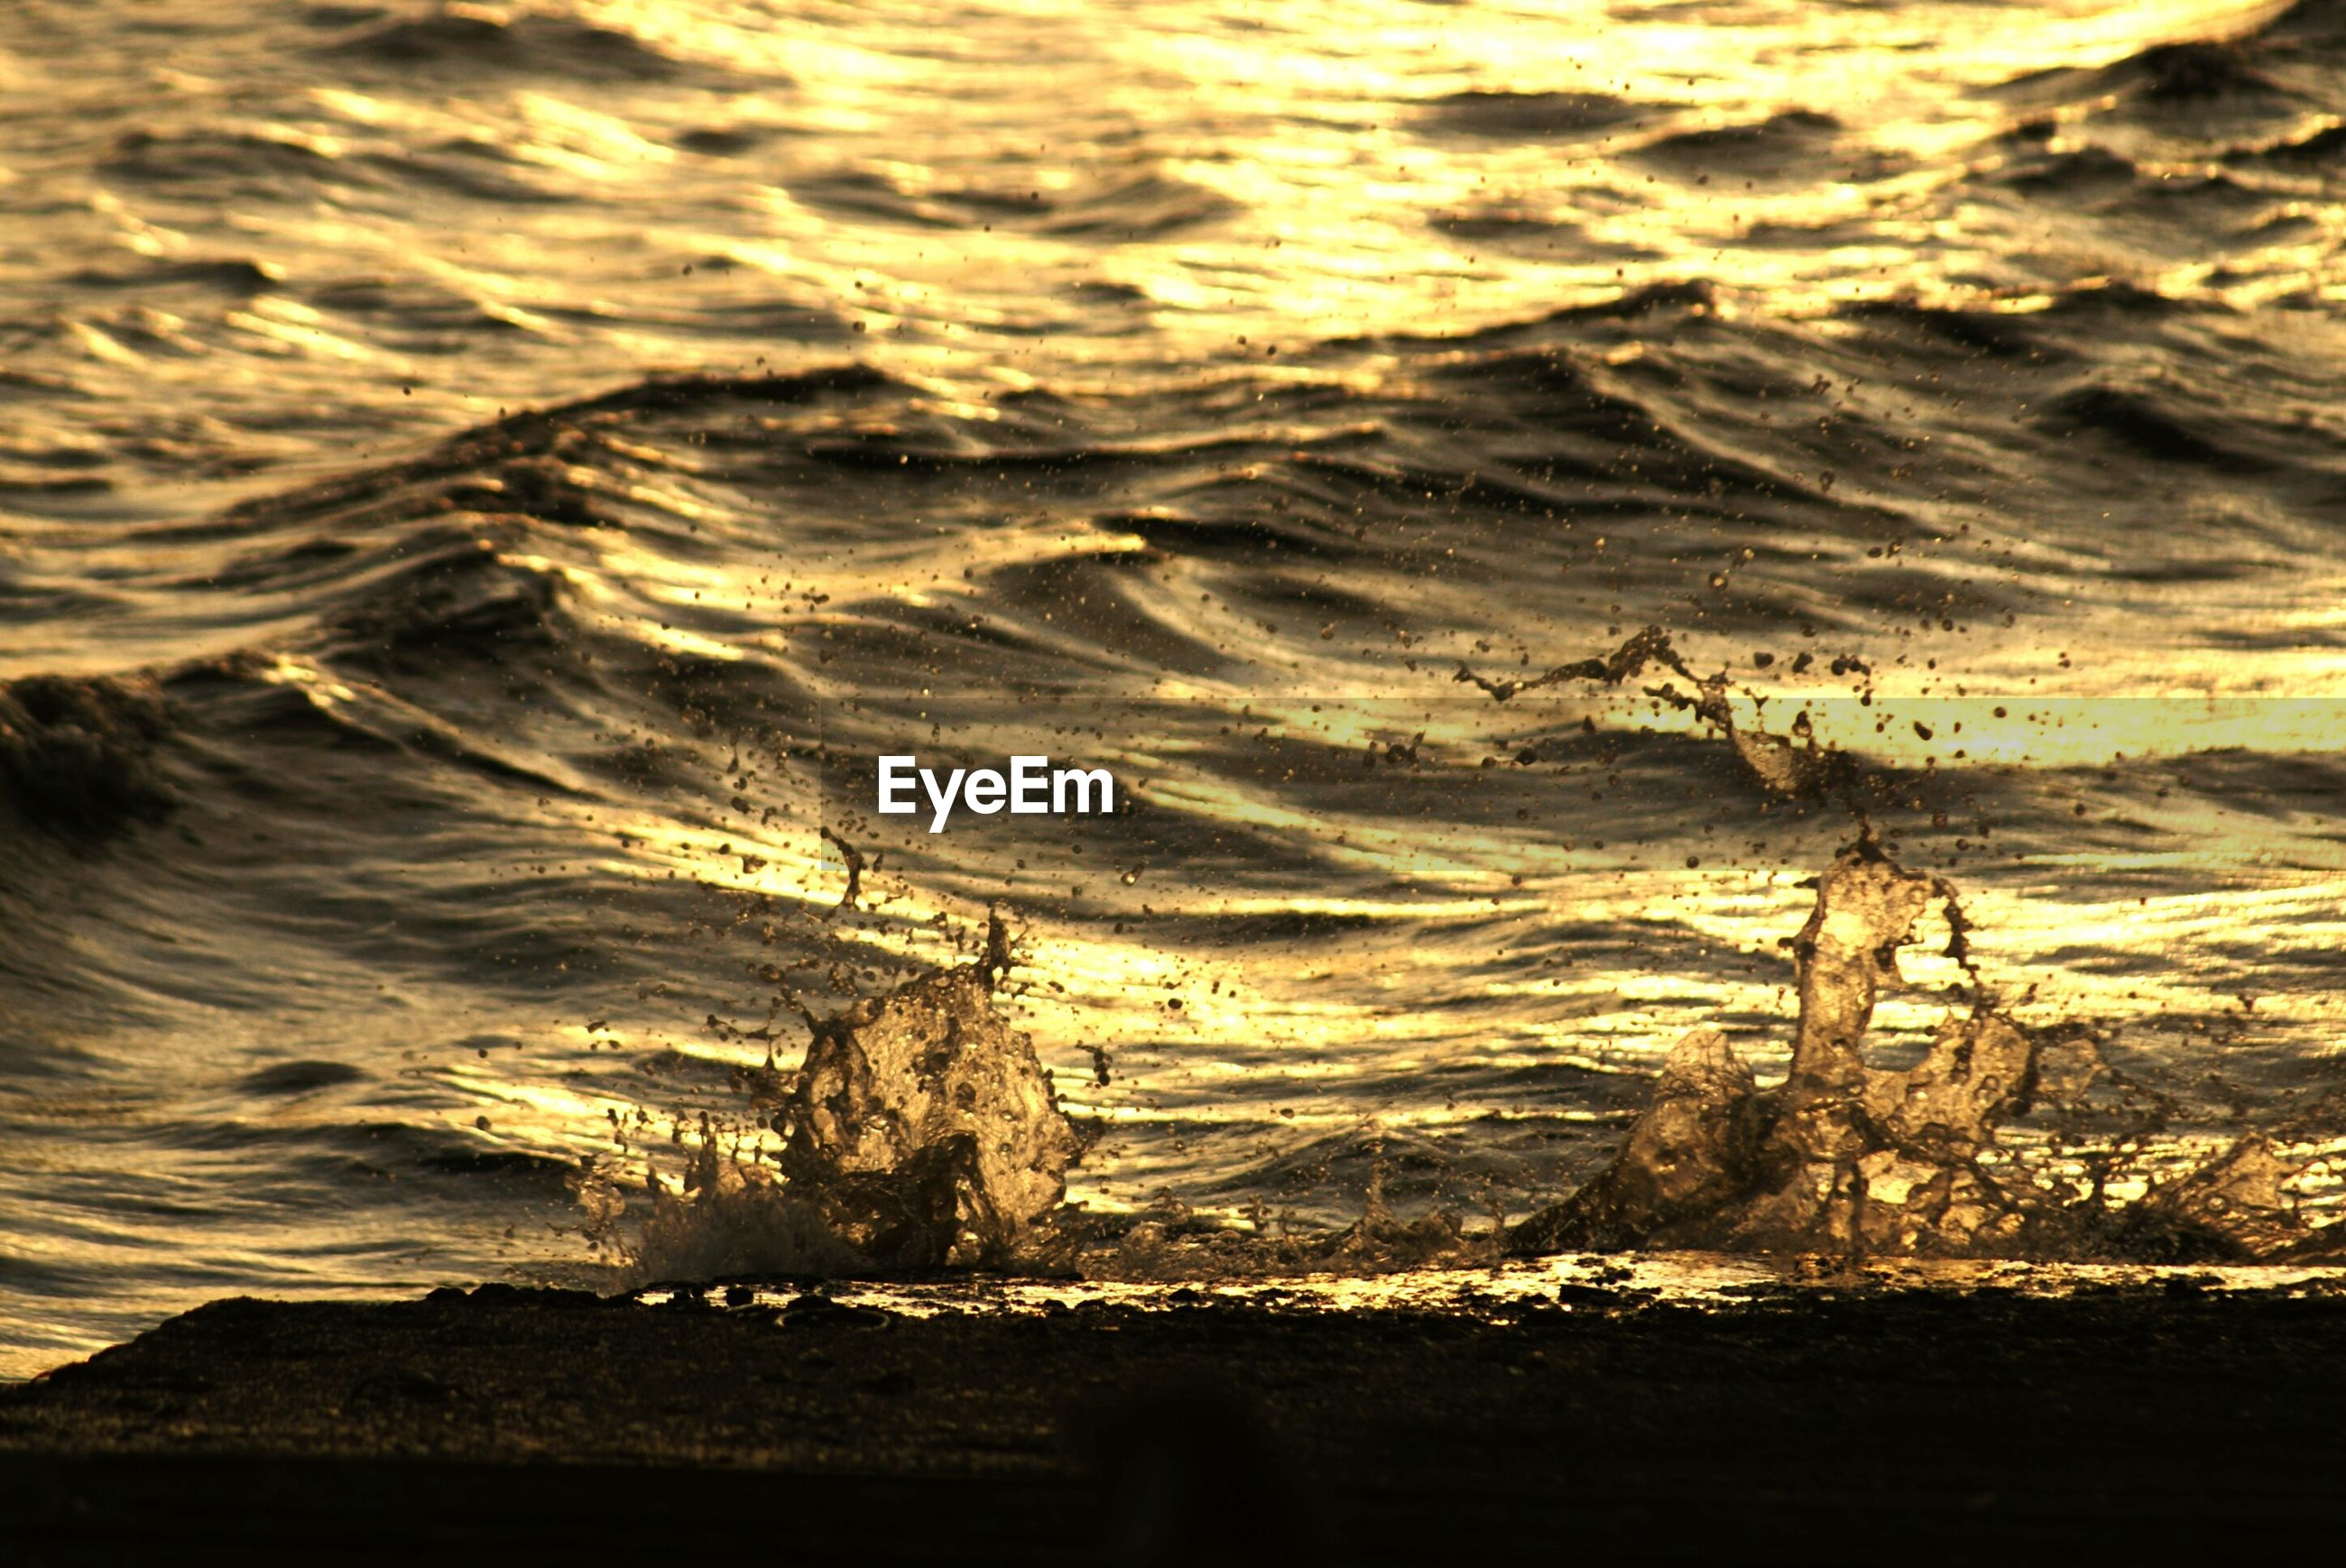 High angle view of sea at sunset